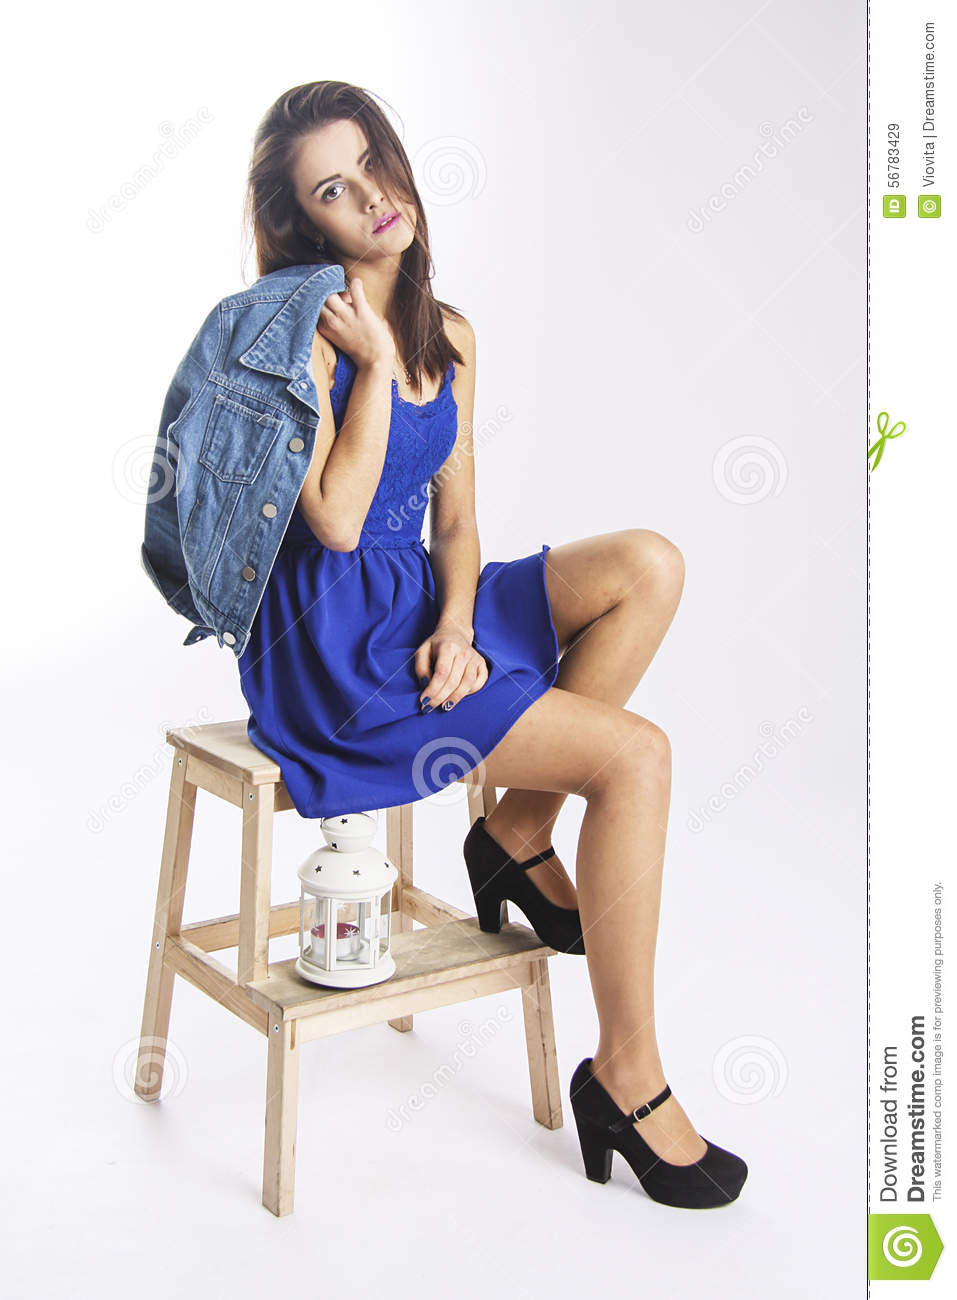 Cute girl in blue jacket on wooden chair